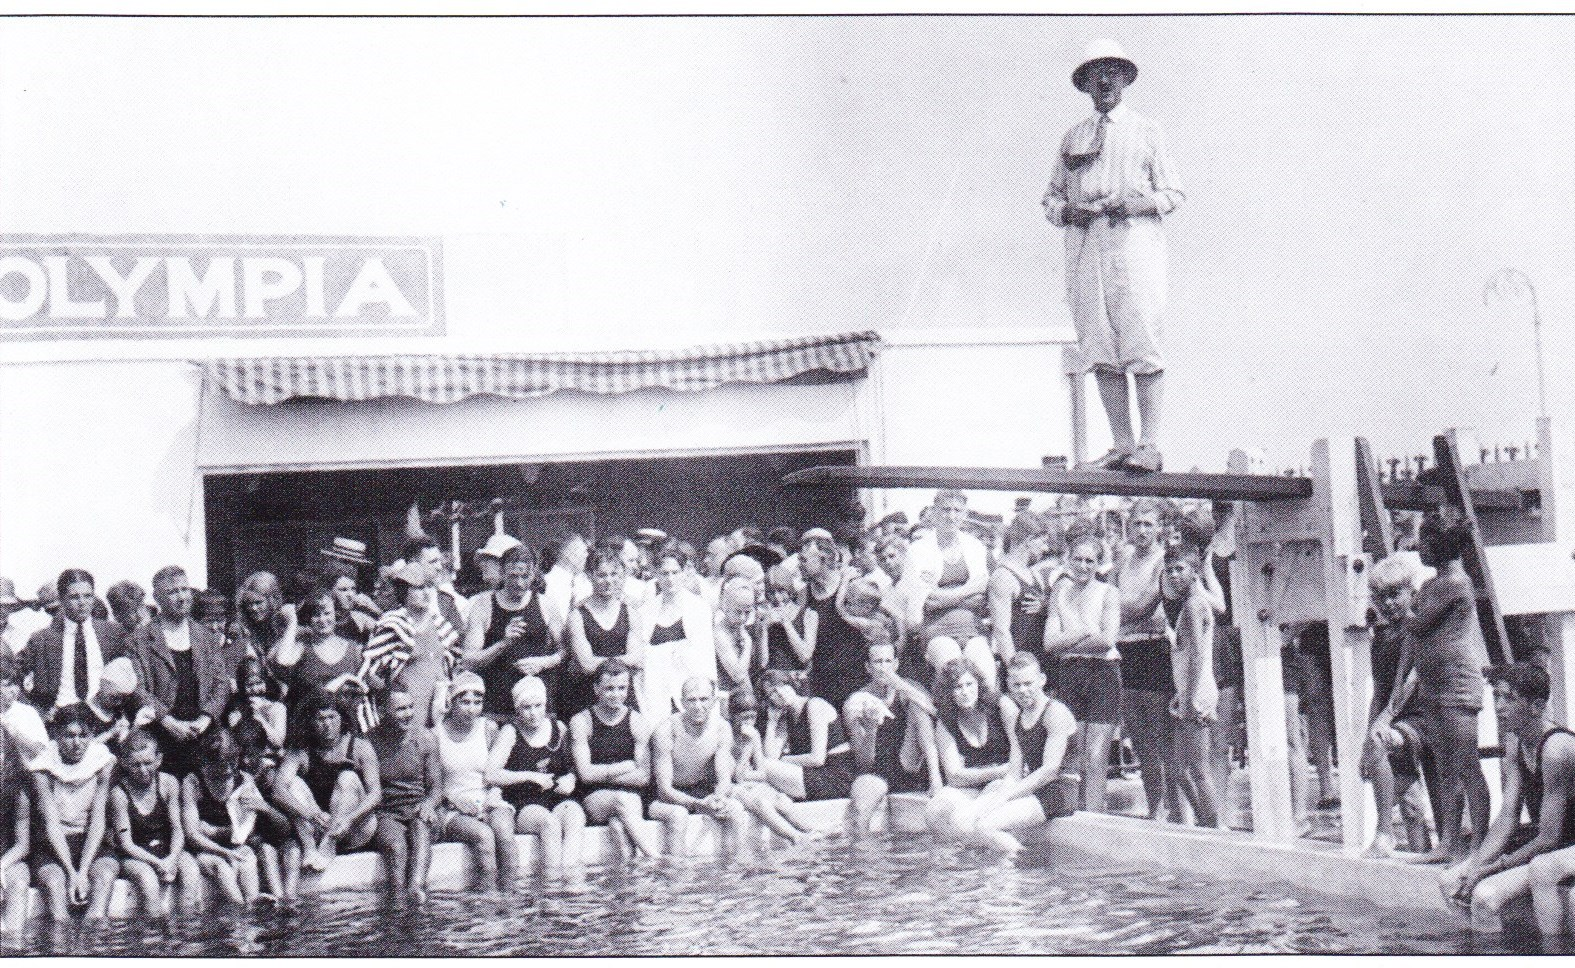 Olympia Pool in the 1930's. Boardwalk and Grand Blvd